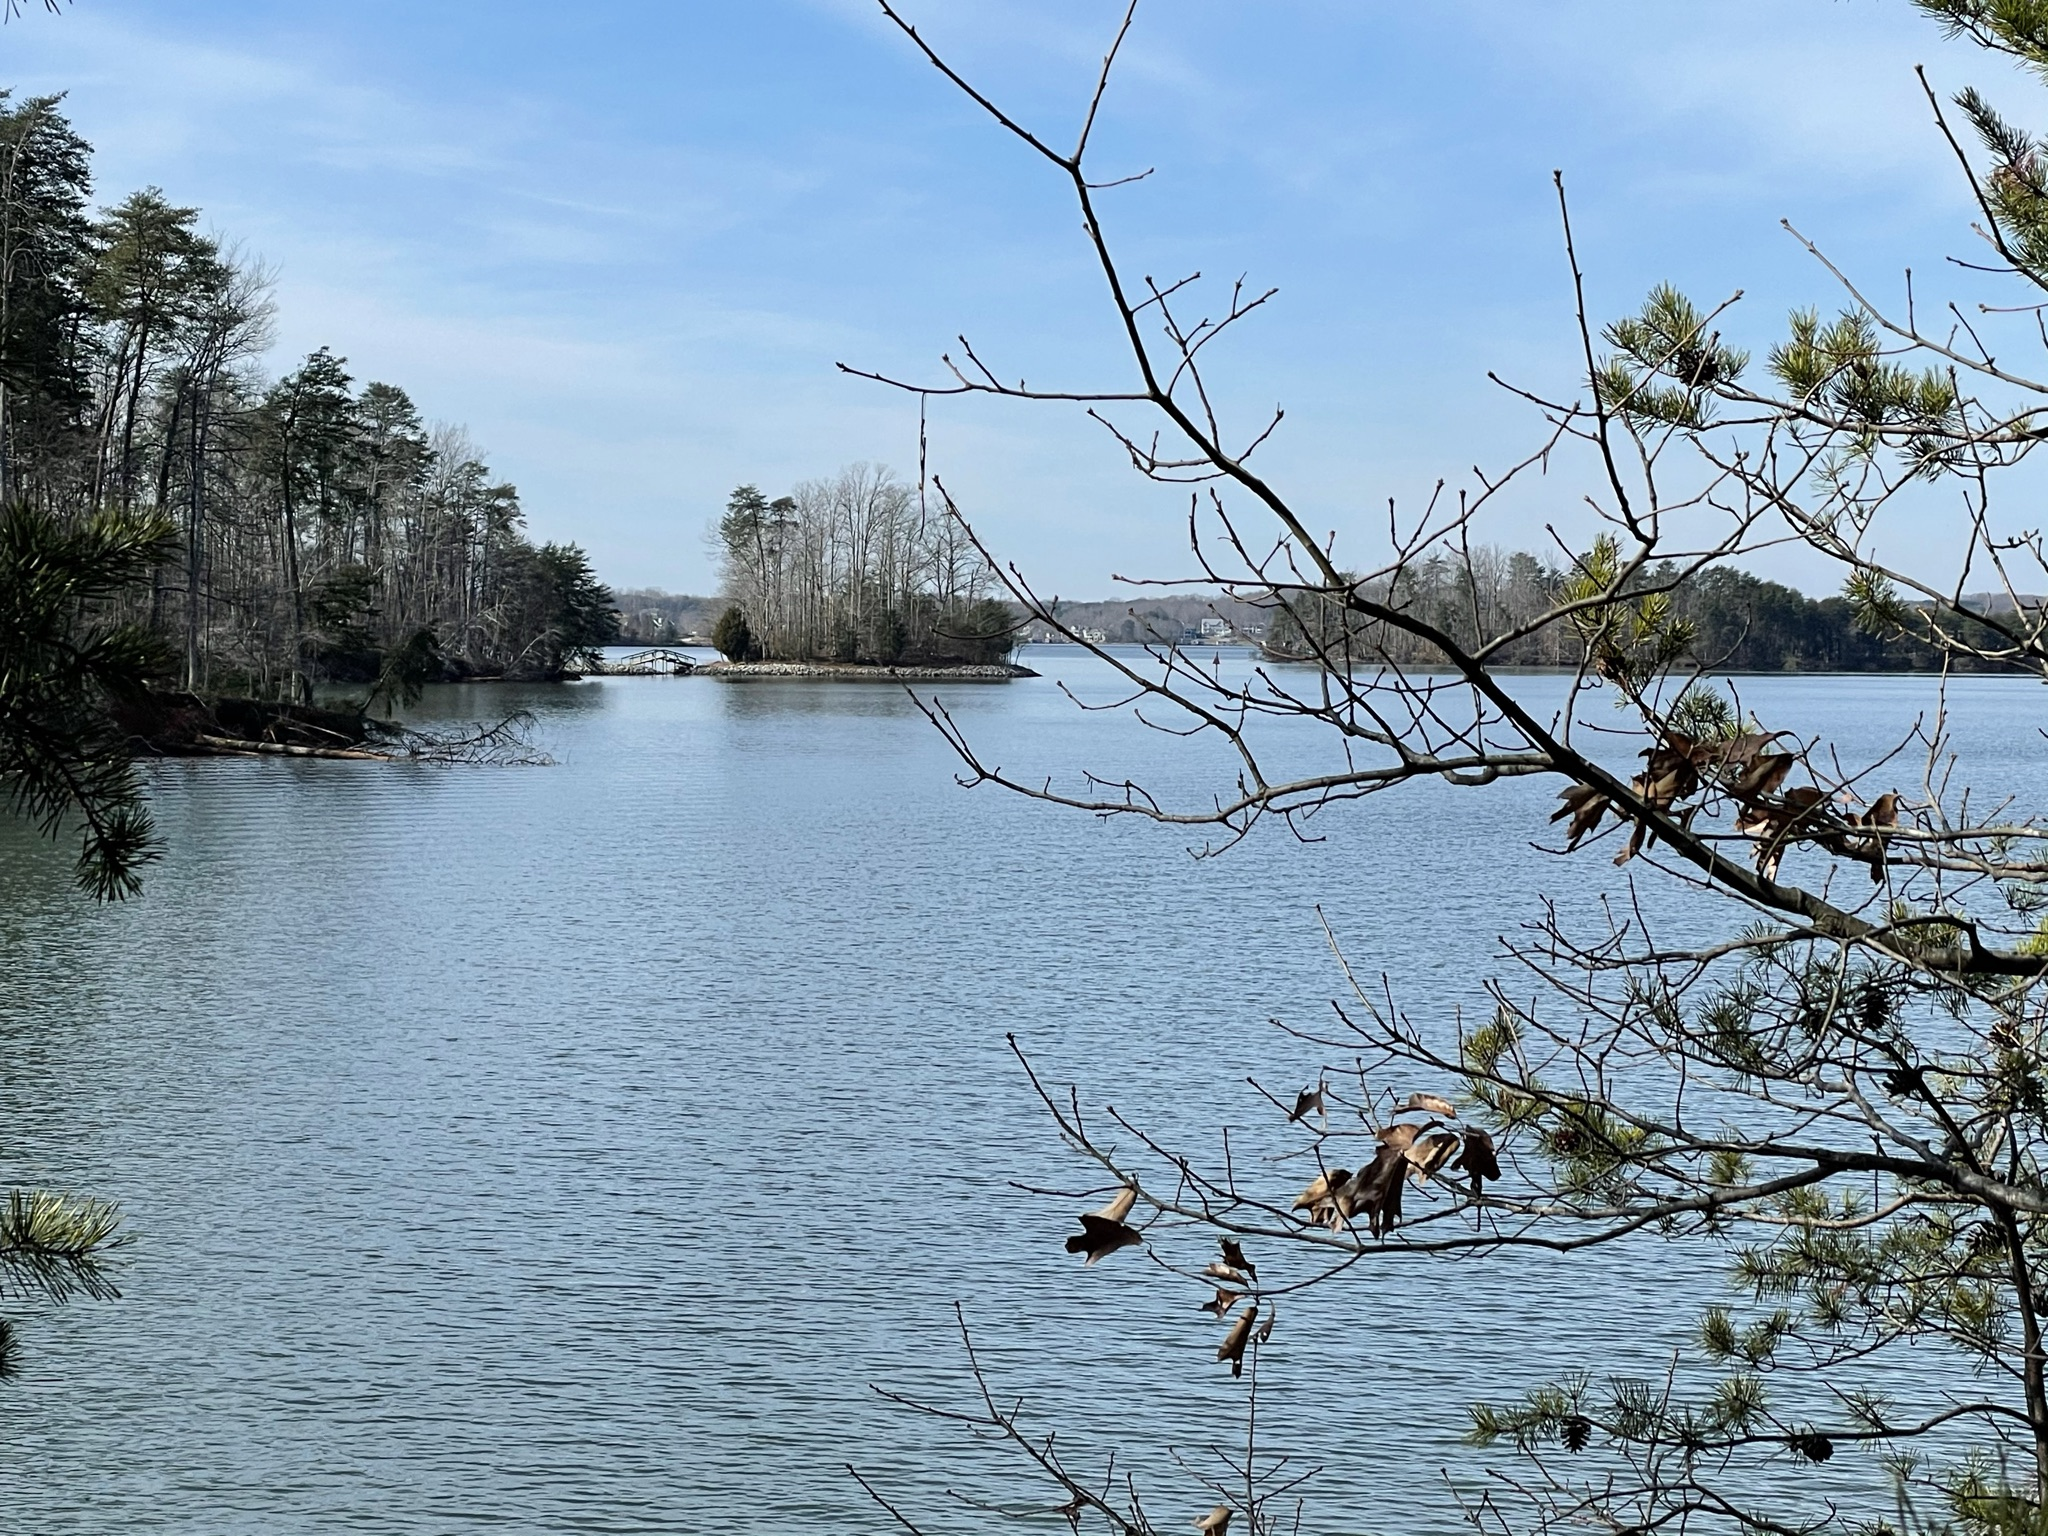 View of Turtle Island in Smith Mountain Lake State Park